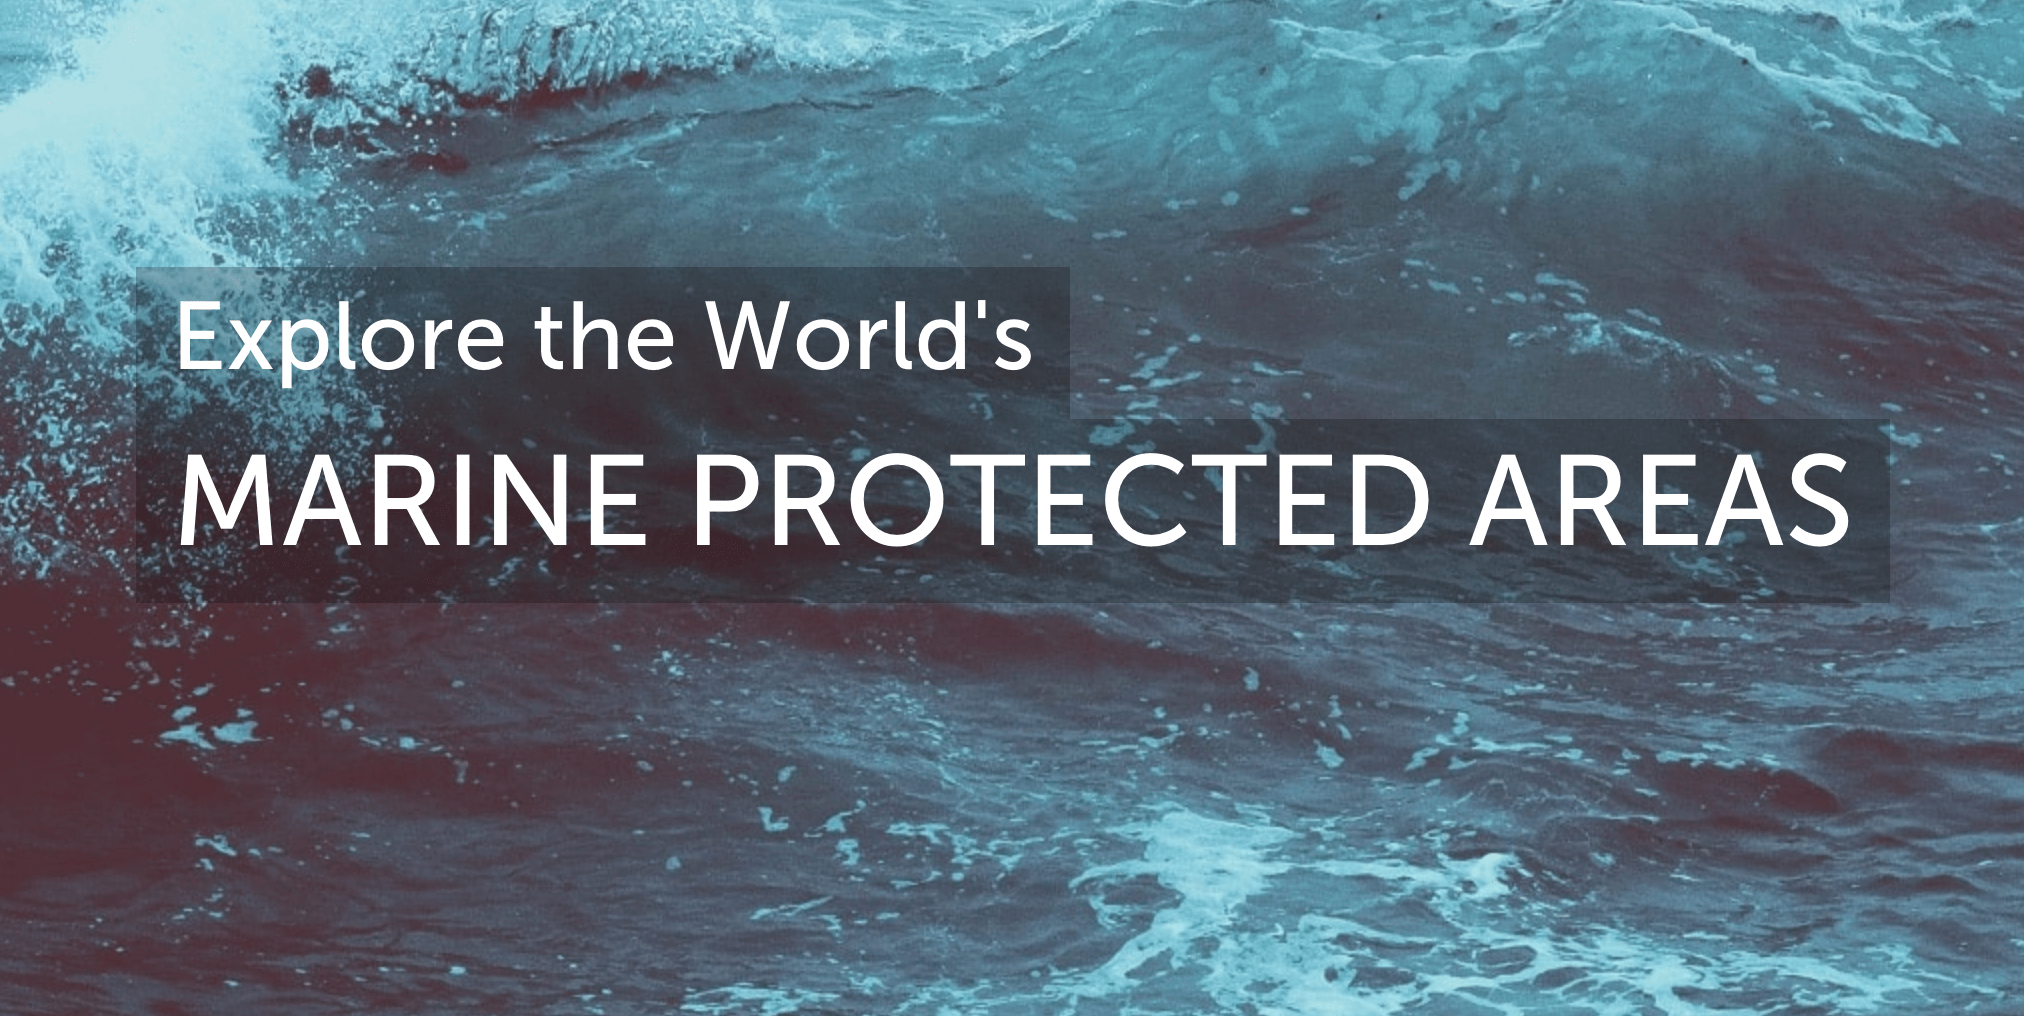 Explore the World's Marine Protected Areas